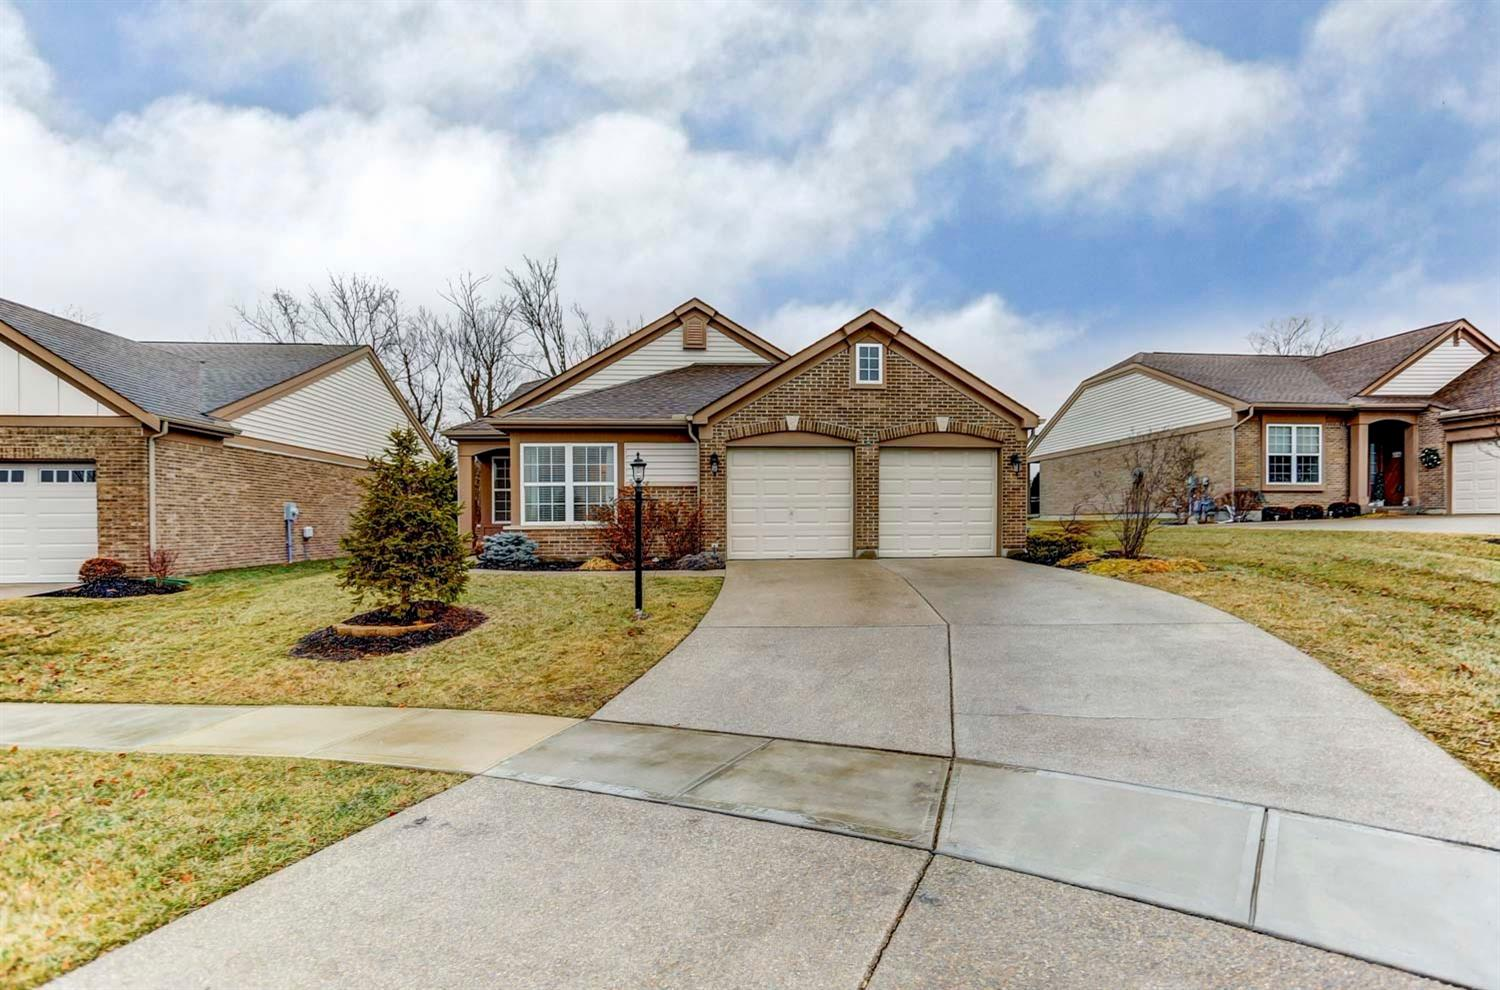 4728 Fox Run Pl Turtle Creek Twp., OH